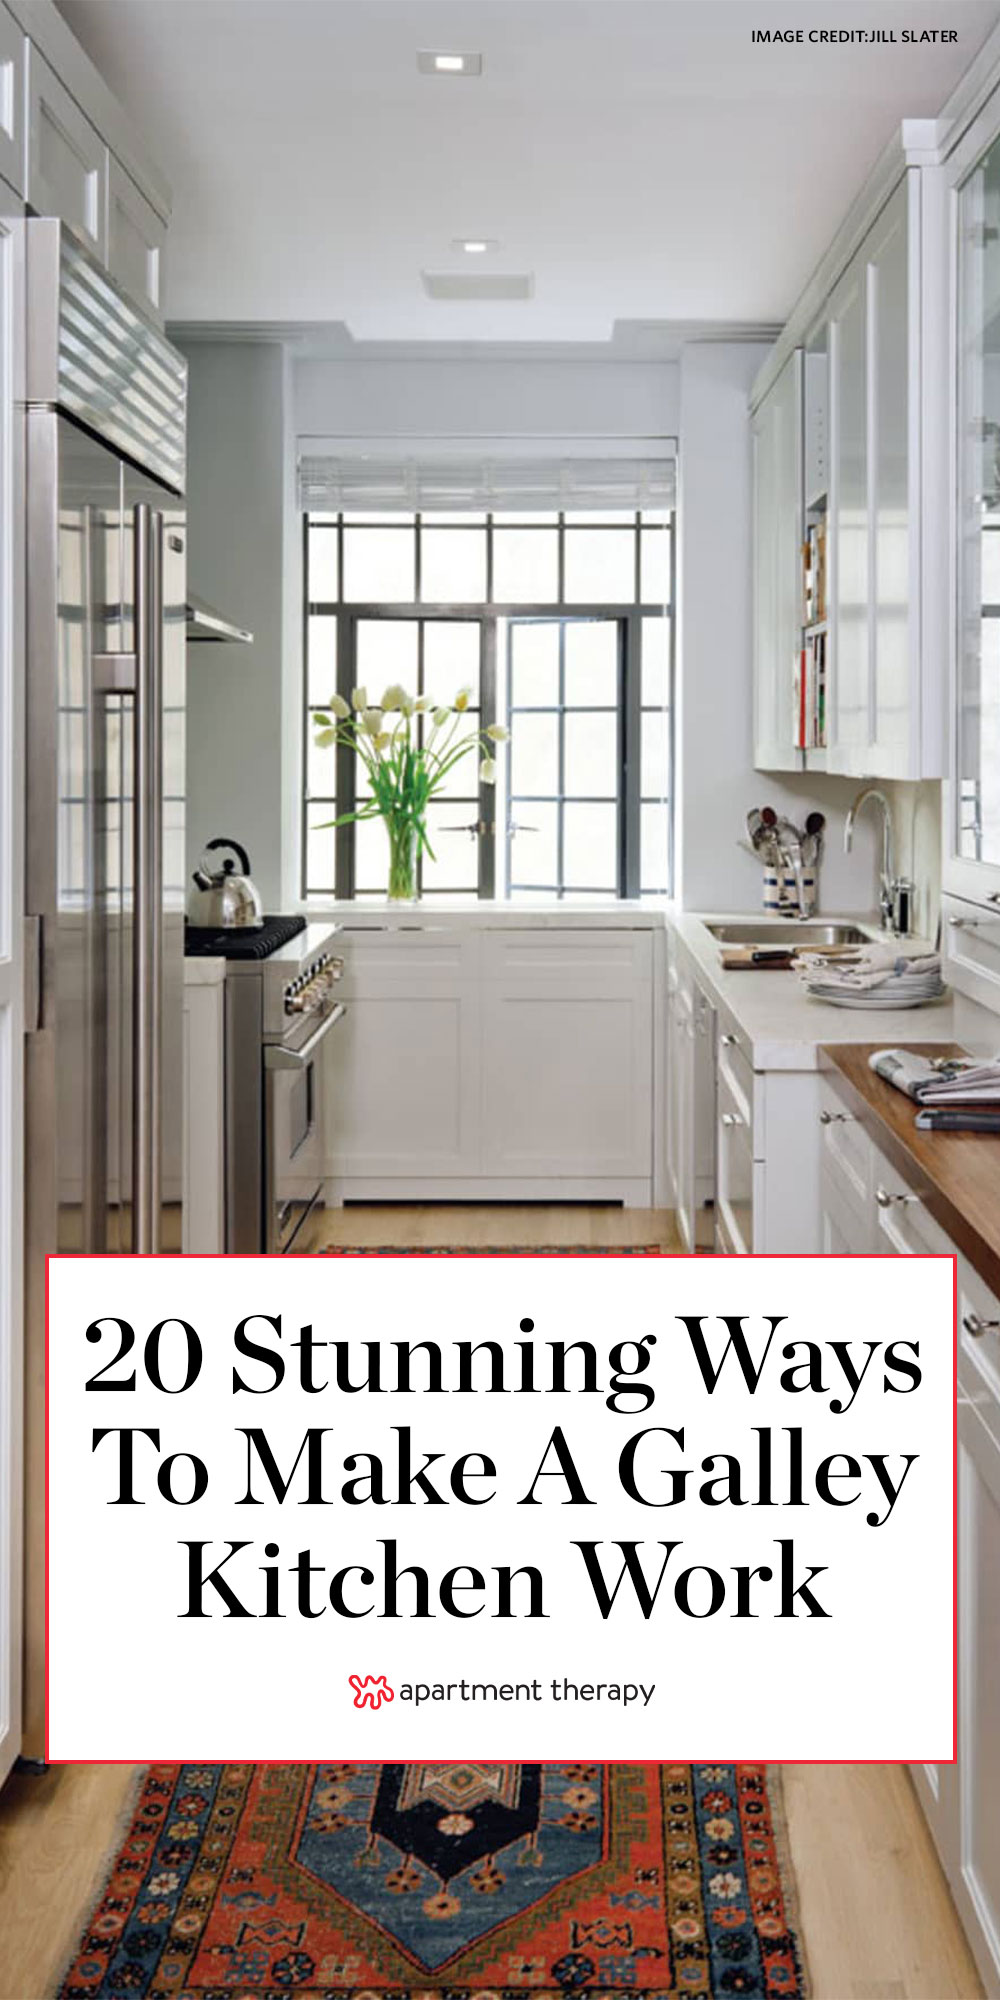 24 Galley Kitchen Ideas Photo Of Cool Galley Kitchens Apartment Therapy